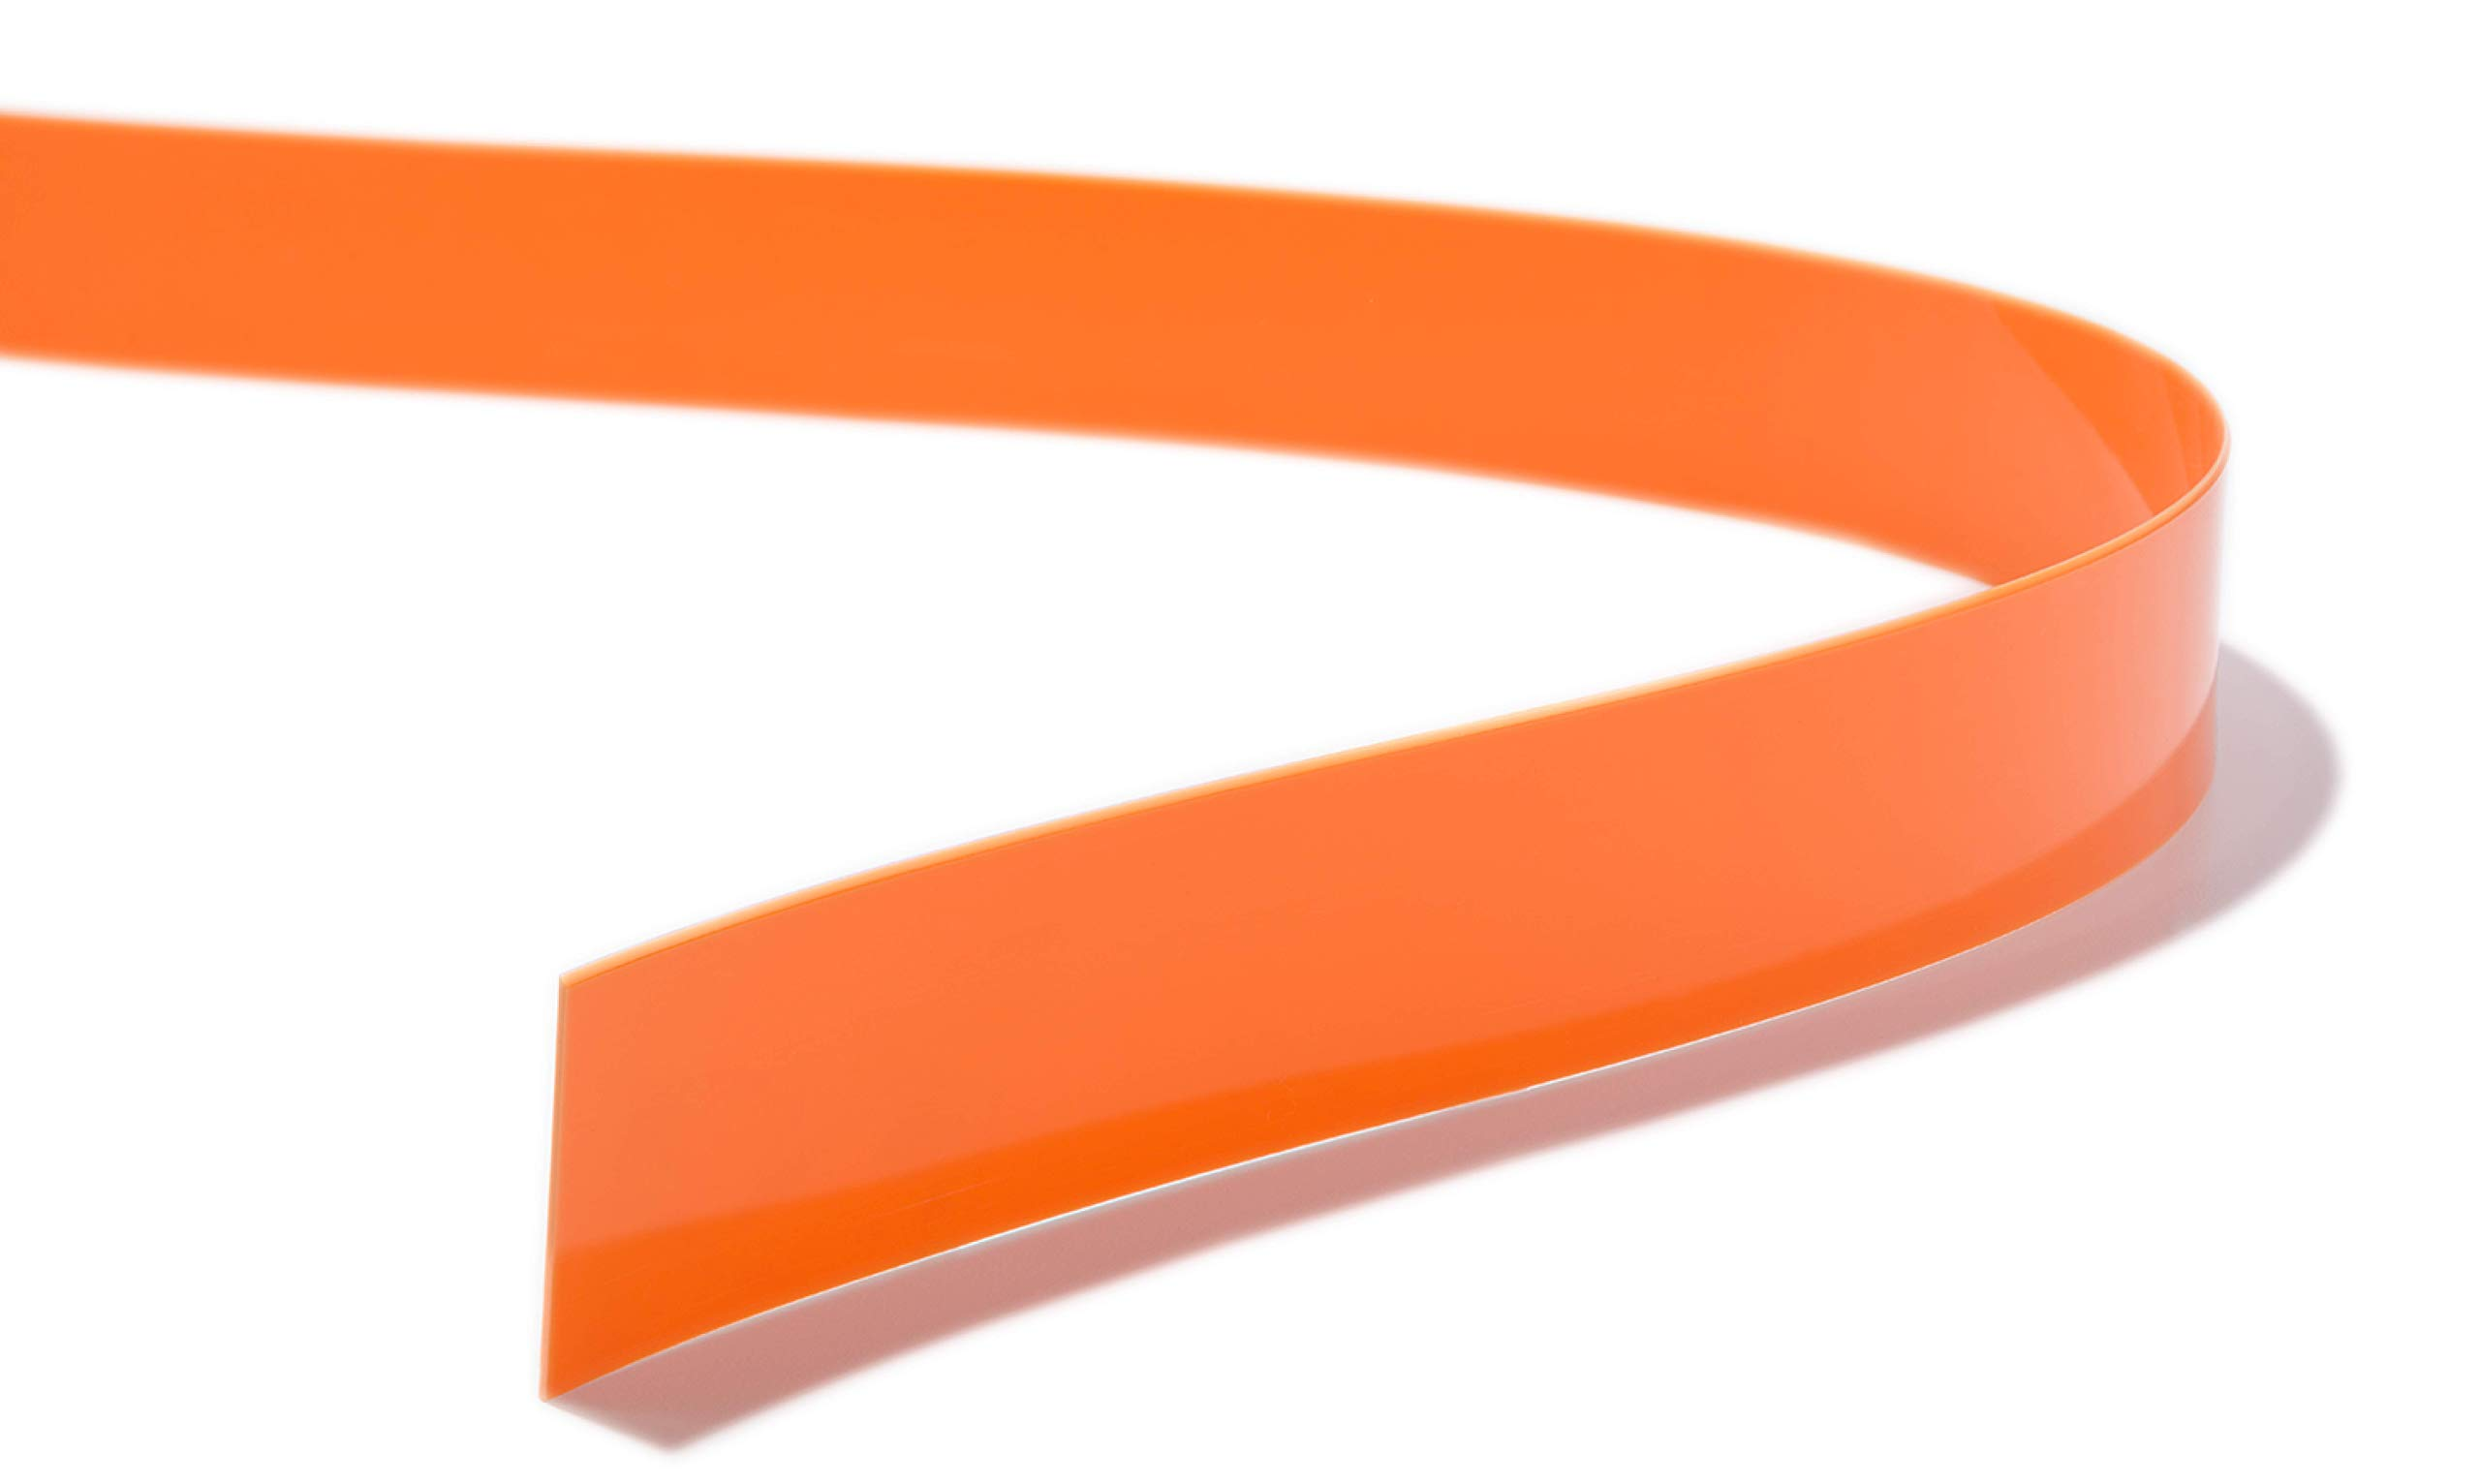 Mark Andy P Series Orange 1.26in x .027in x 13.81in MicroTip 8 (50 Pieces) by Flexo Concepts